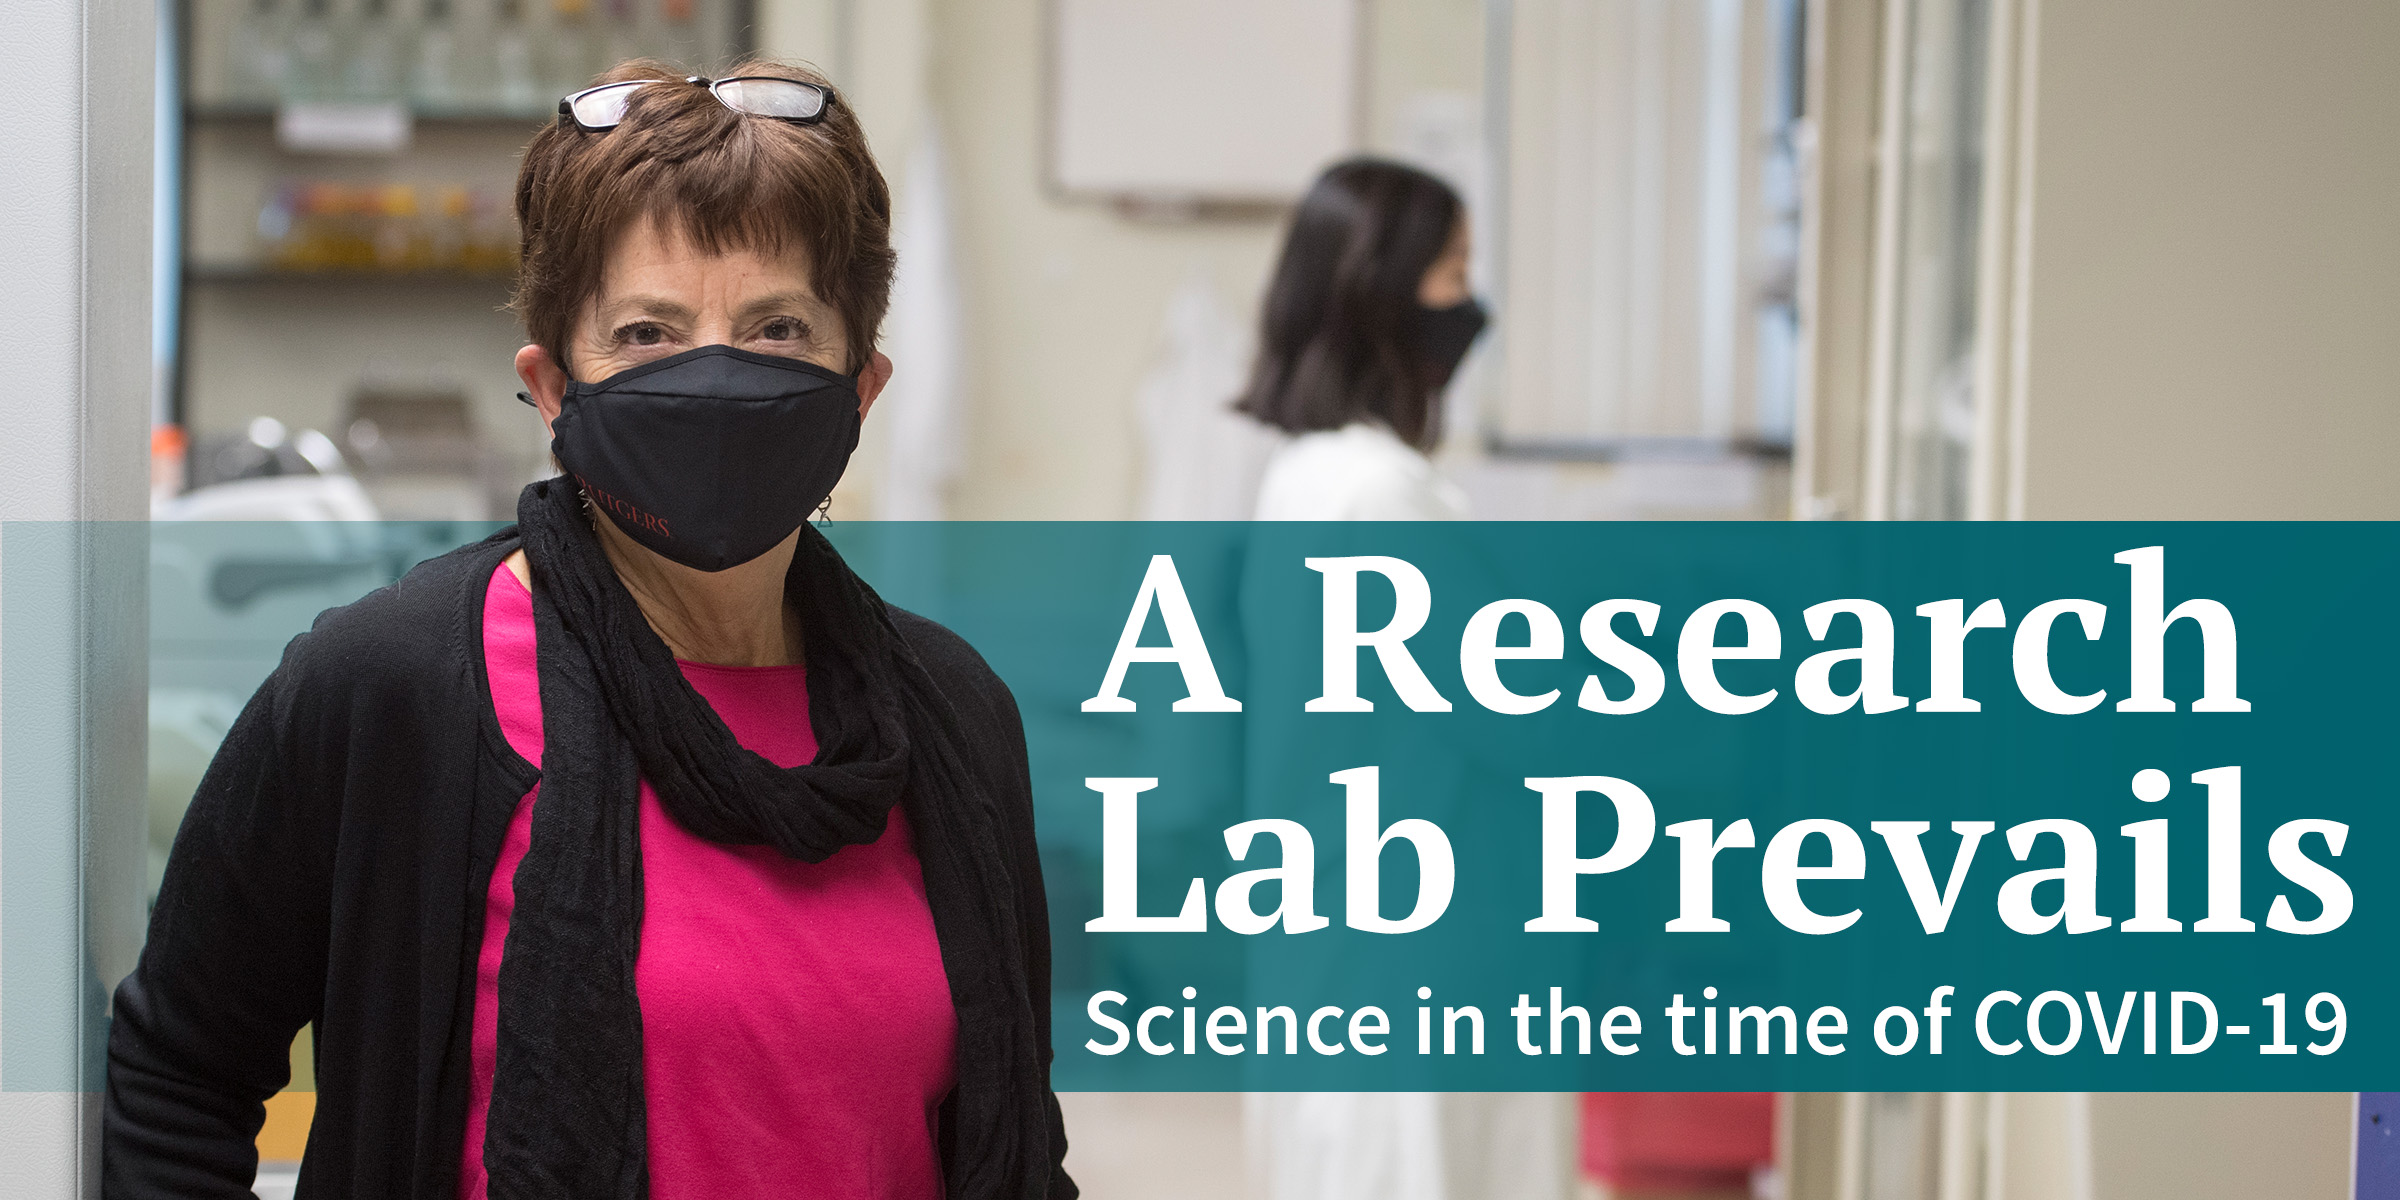 A Research Lab Prevails: Science in the time of COVID-19